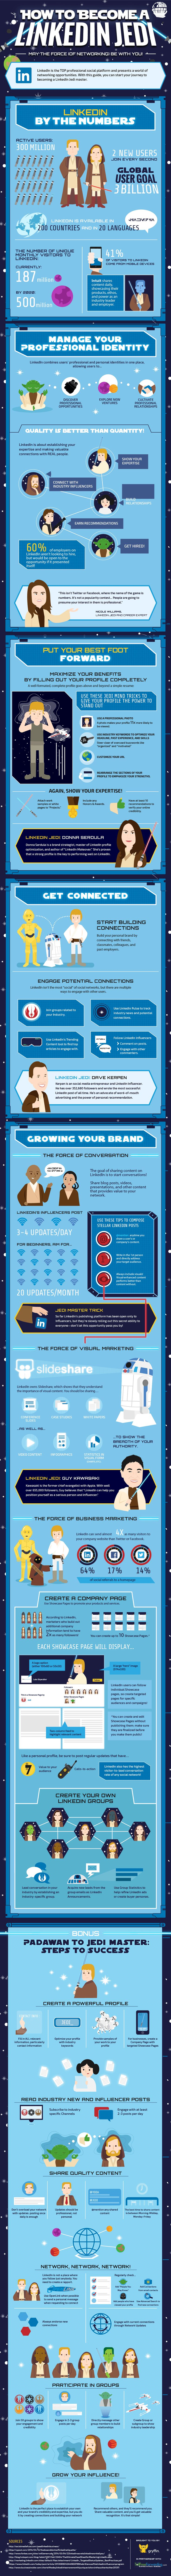 How To Become a #LinkedIn #Networking #JEDI